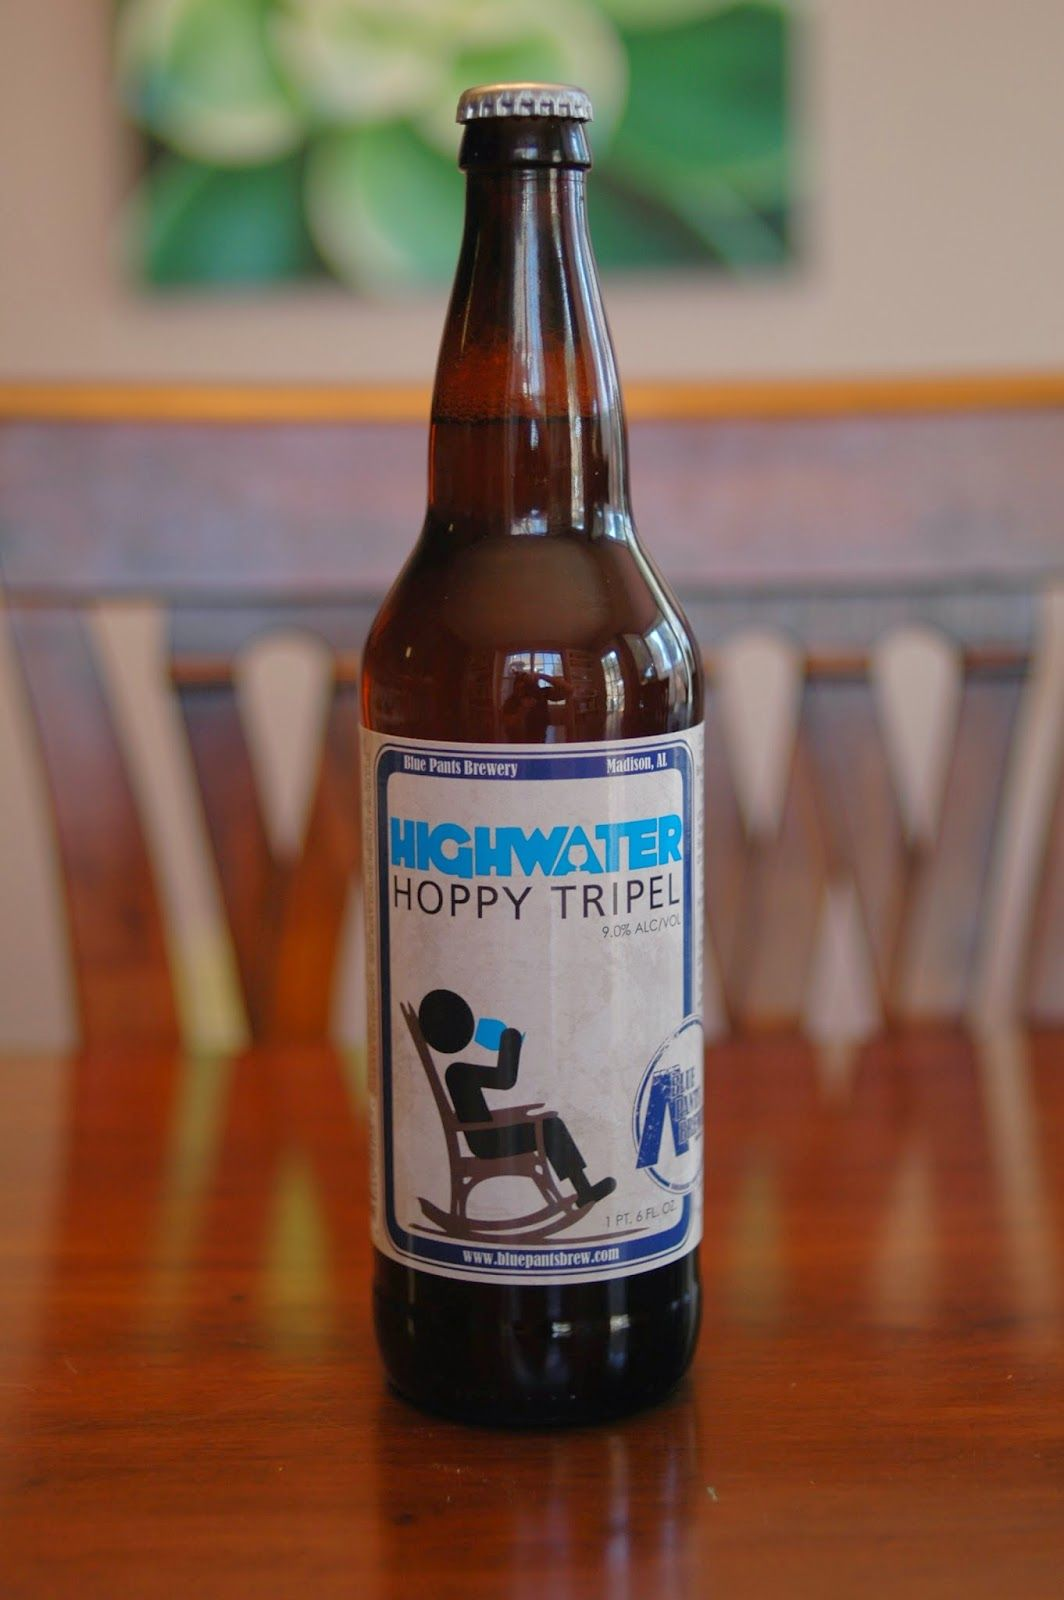 Highwater Tripel from Blue Pants